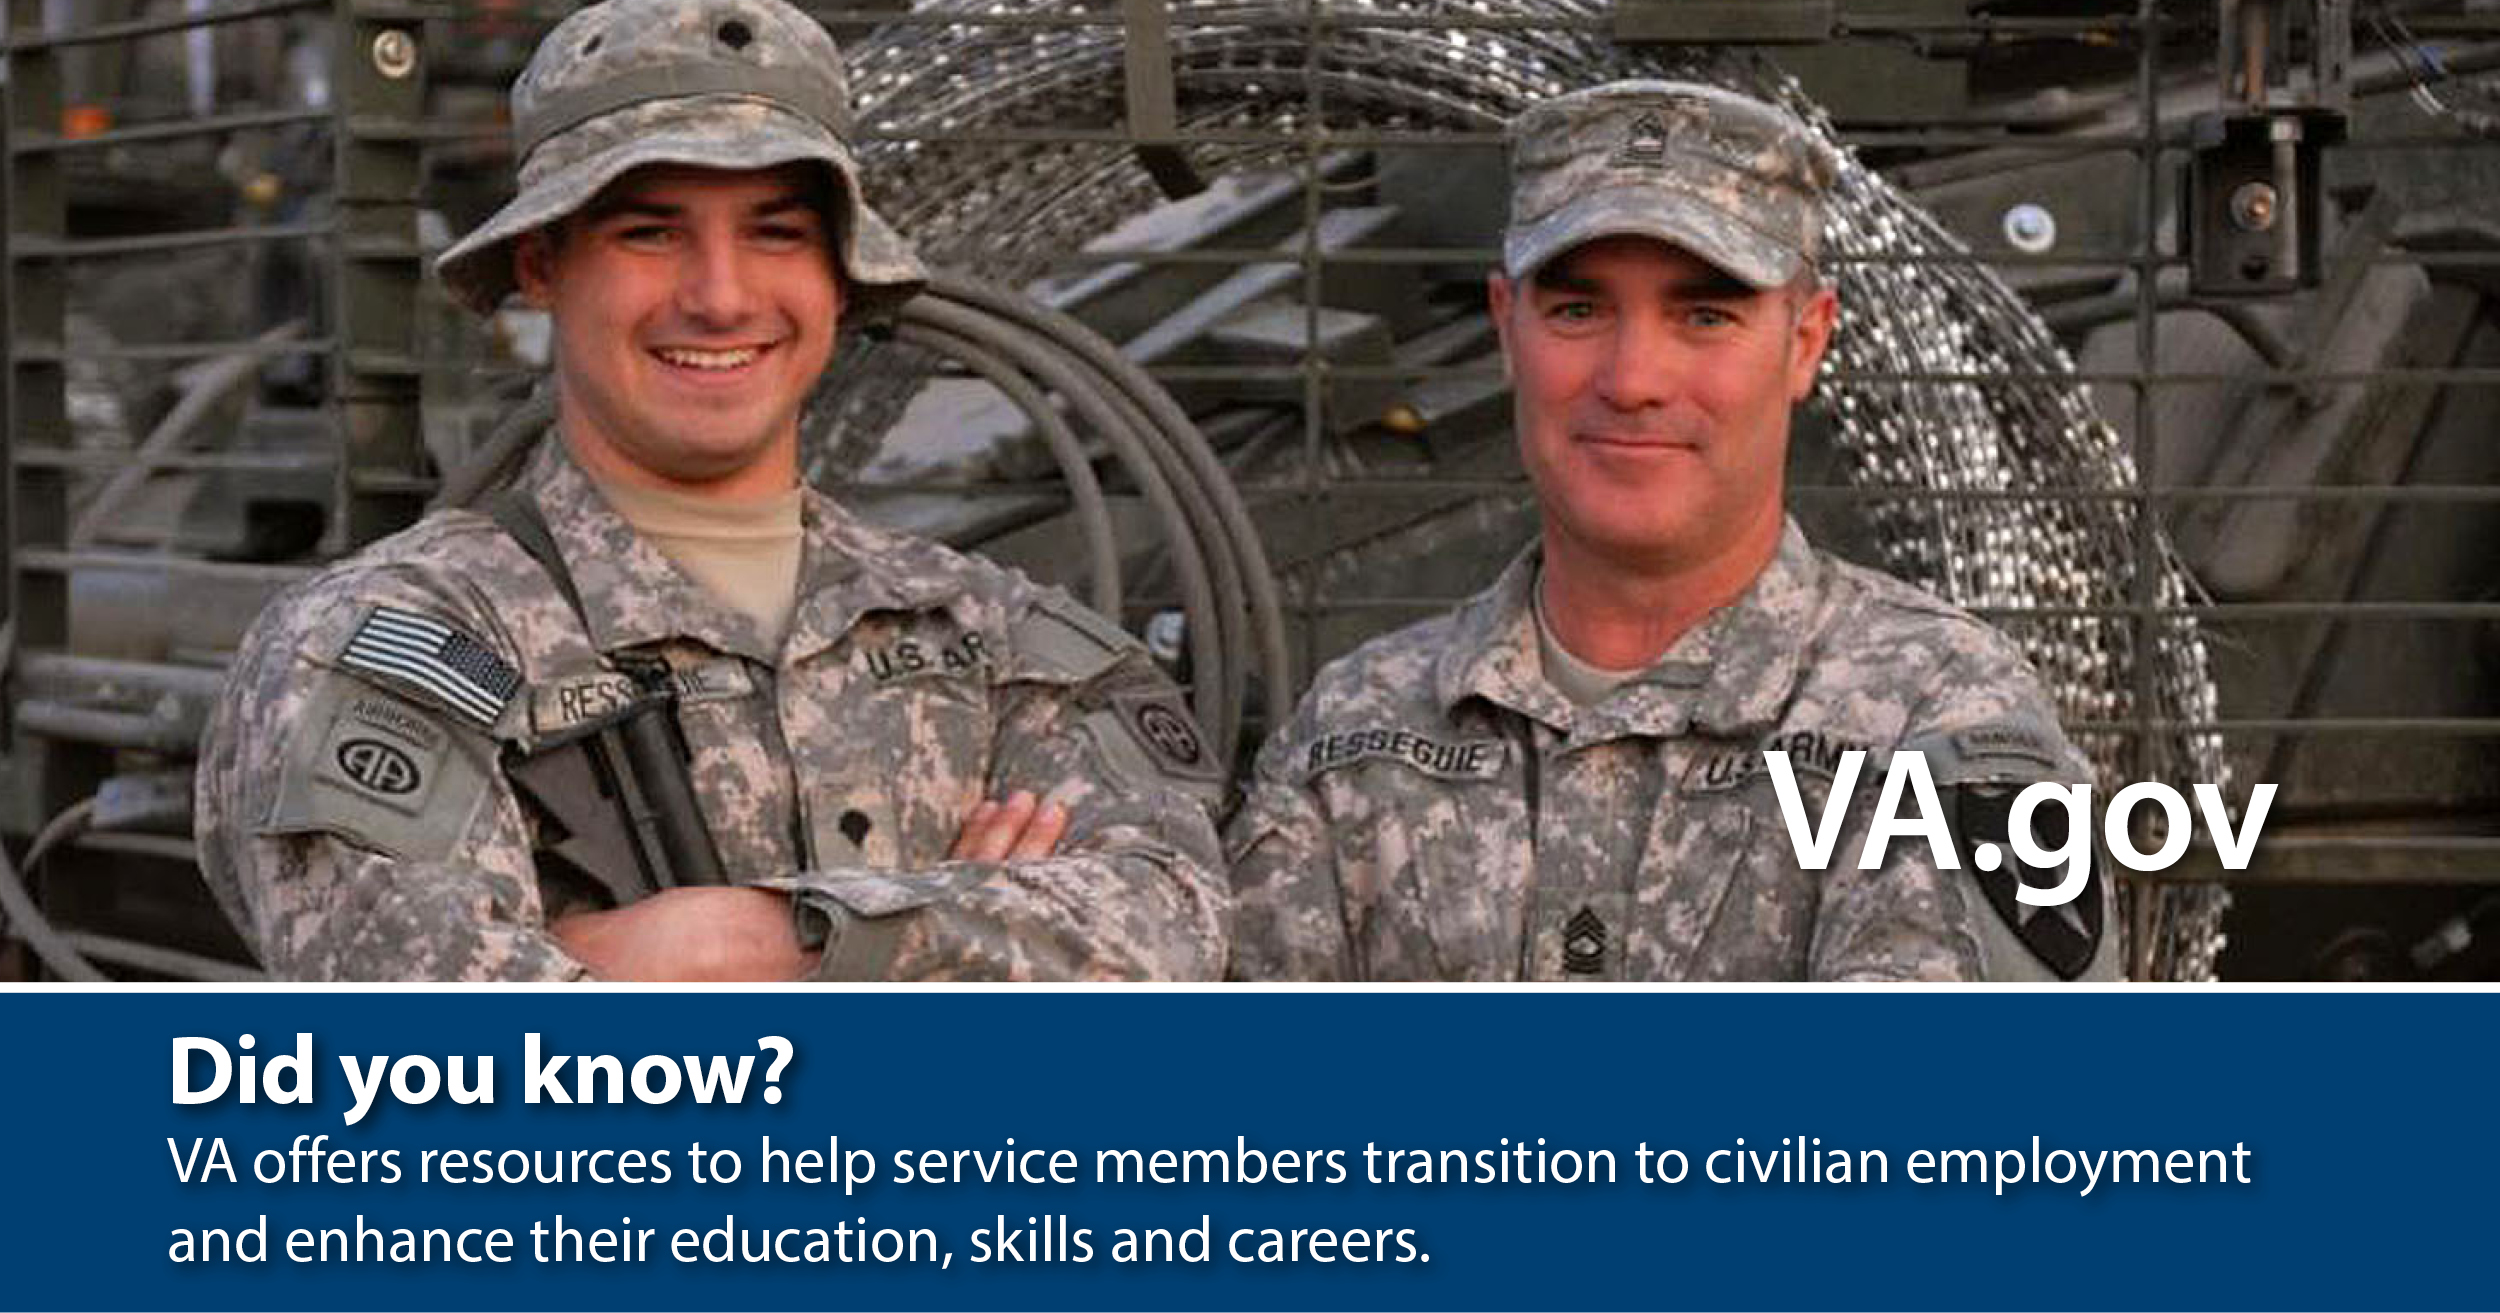 Did you know? VA offers resources to help service members transition to civilian employment and enhance their education, skills and careers.